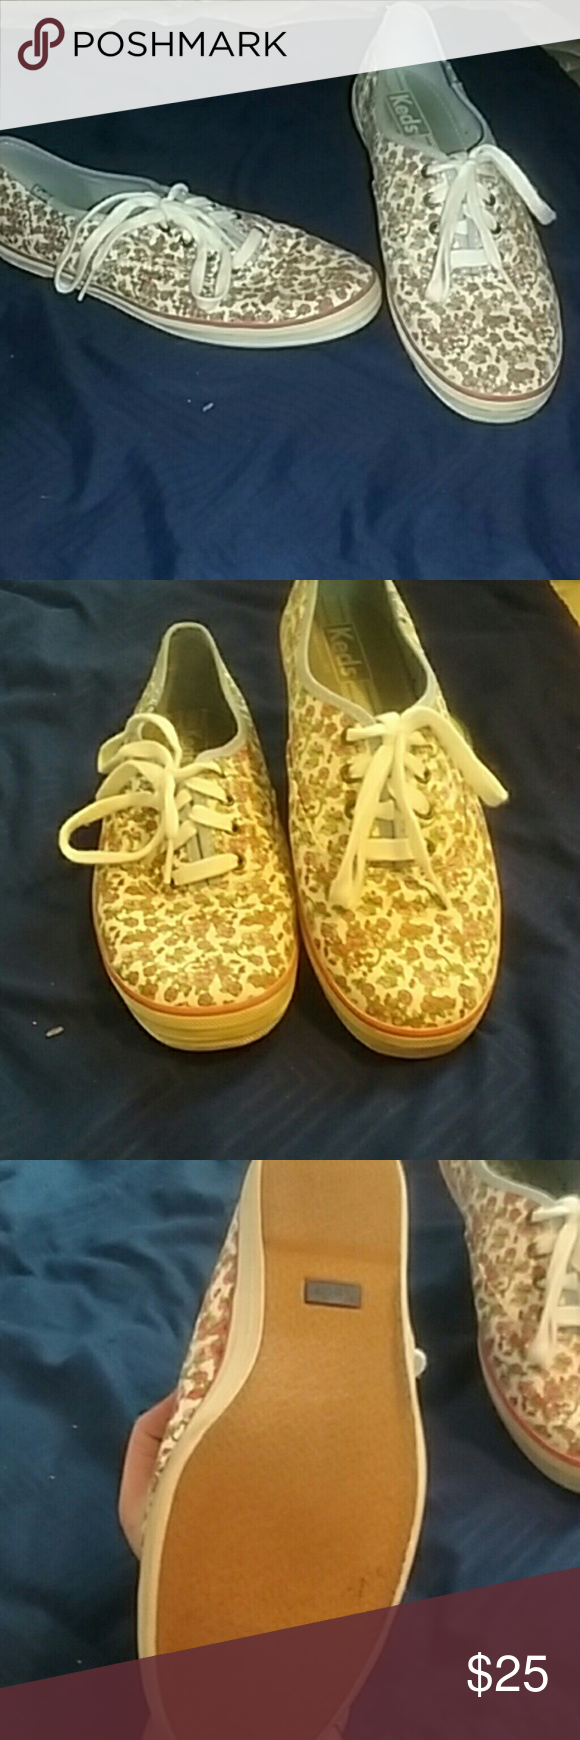 Flower print Keds Like new. A little wear but no stains Rios ortairs or anything noticeable. Very clean..pet and smoke free. Keds Shoes Flats & Loafers